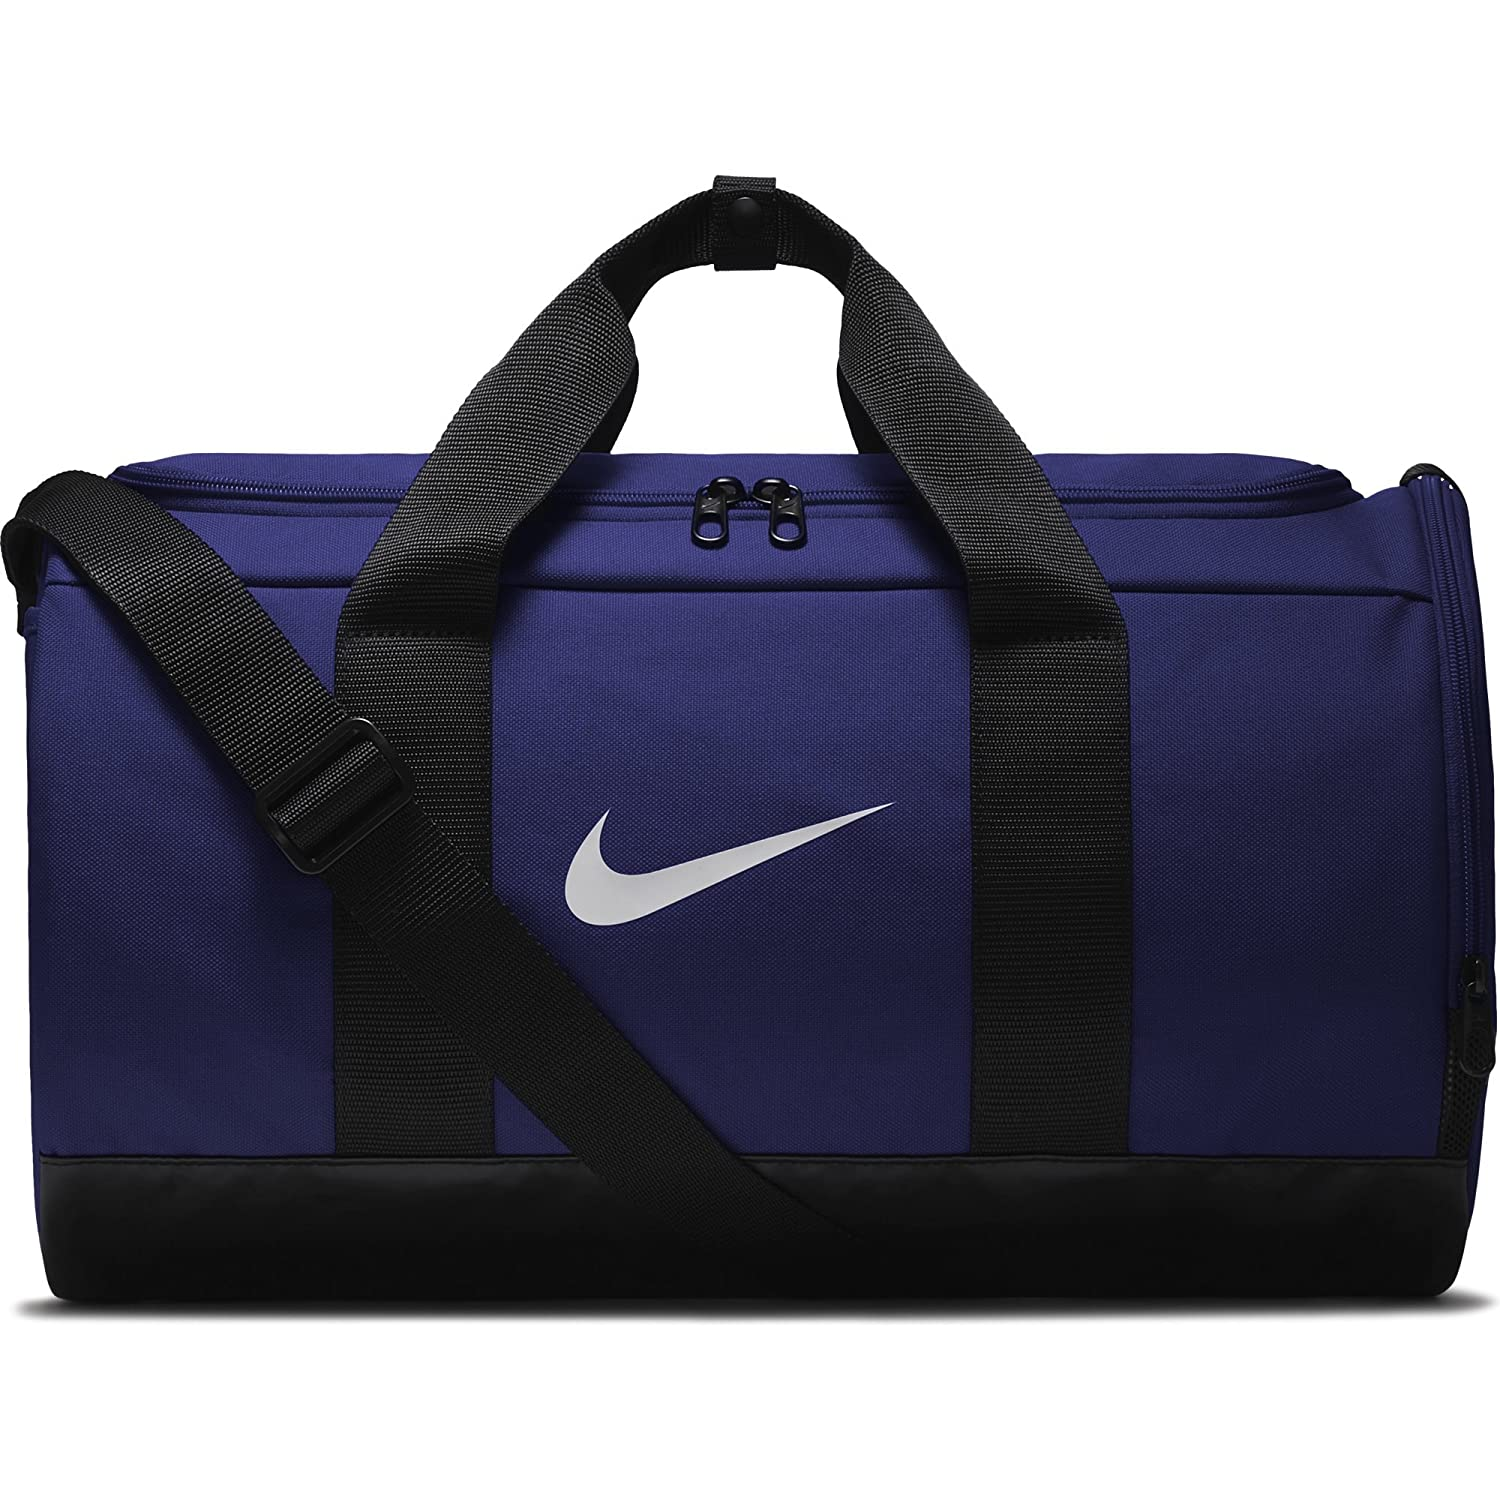 48c2c6b639b ... check out 86f21 dc402 Nike team womens training duffel bag black white  one size sports outdoors  new arrival 4e3a5 75d8c Nike Hoops Elite ...